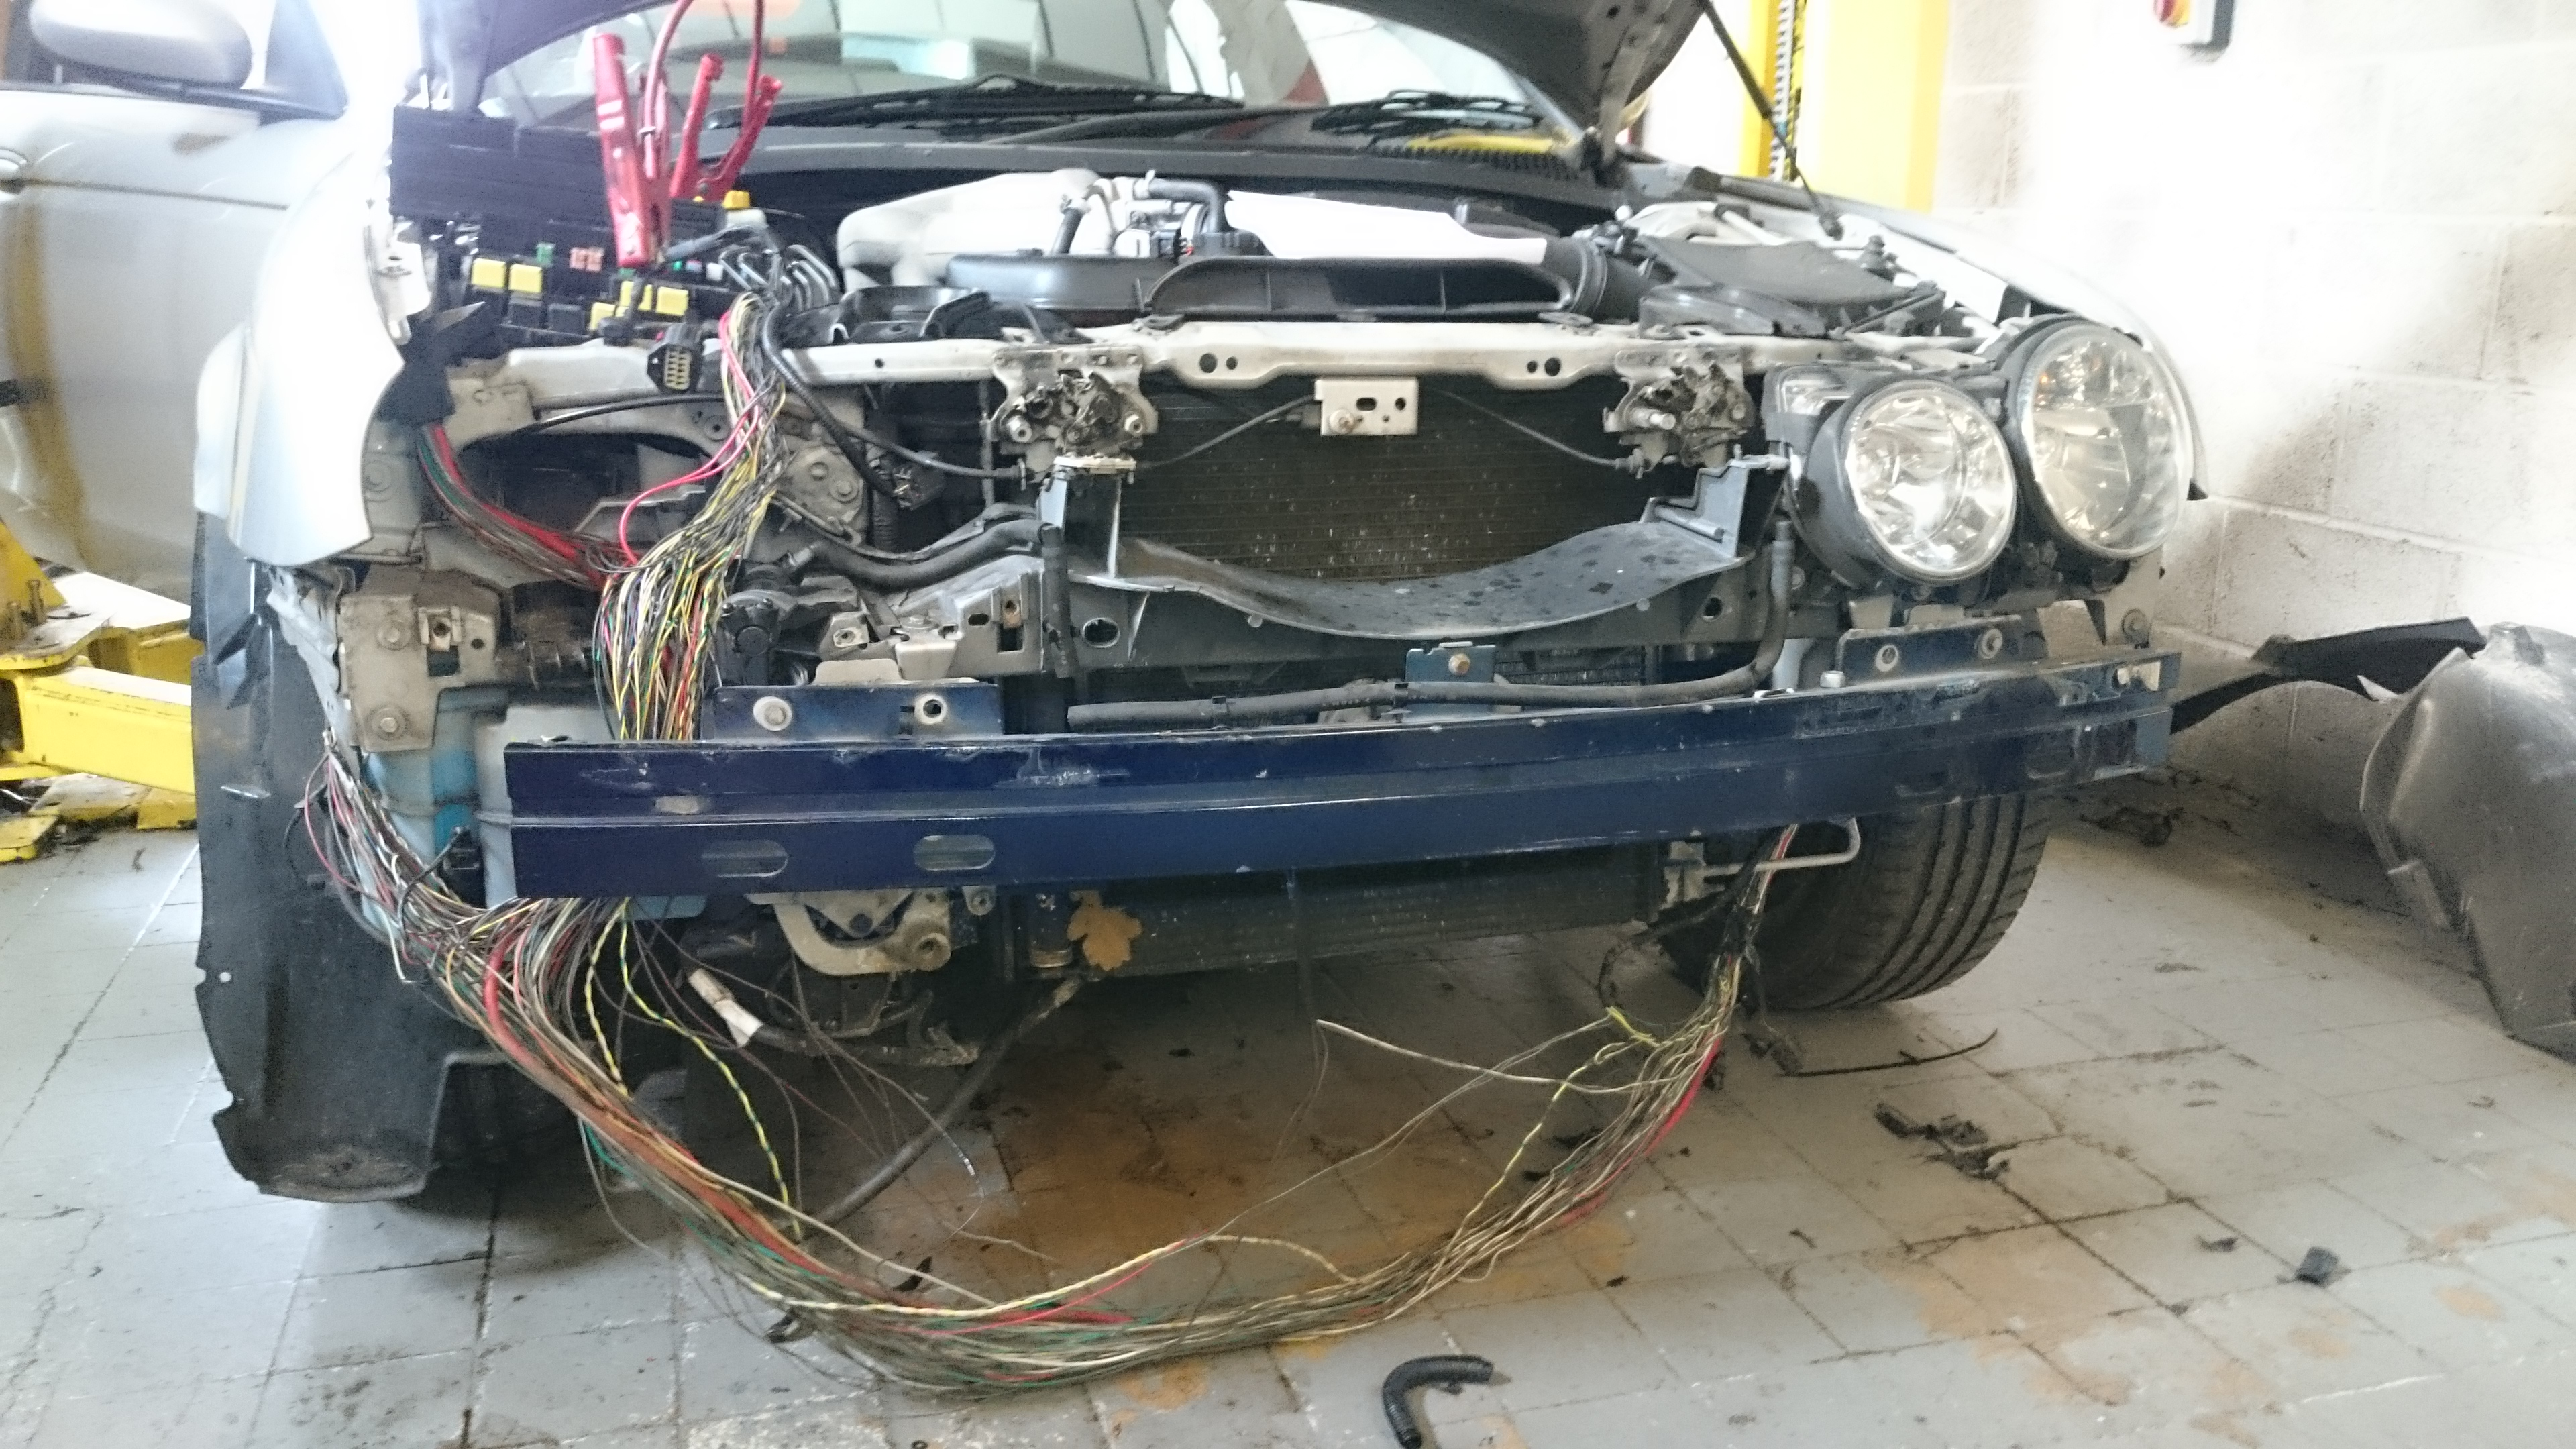 Jaguar S Type 2004 Car Electrics Repairs Mercedes Wiring Loom Repair A Common Problem With This Can Be The Module At Rear Of Above Dif Luckily Close Inspection Leading